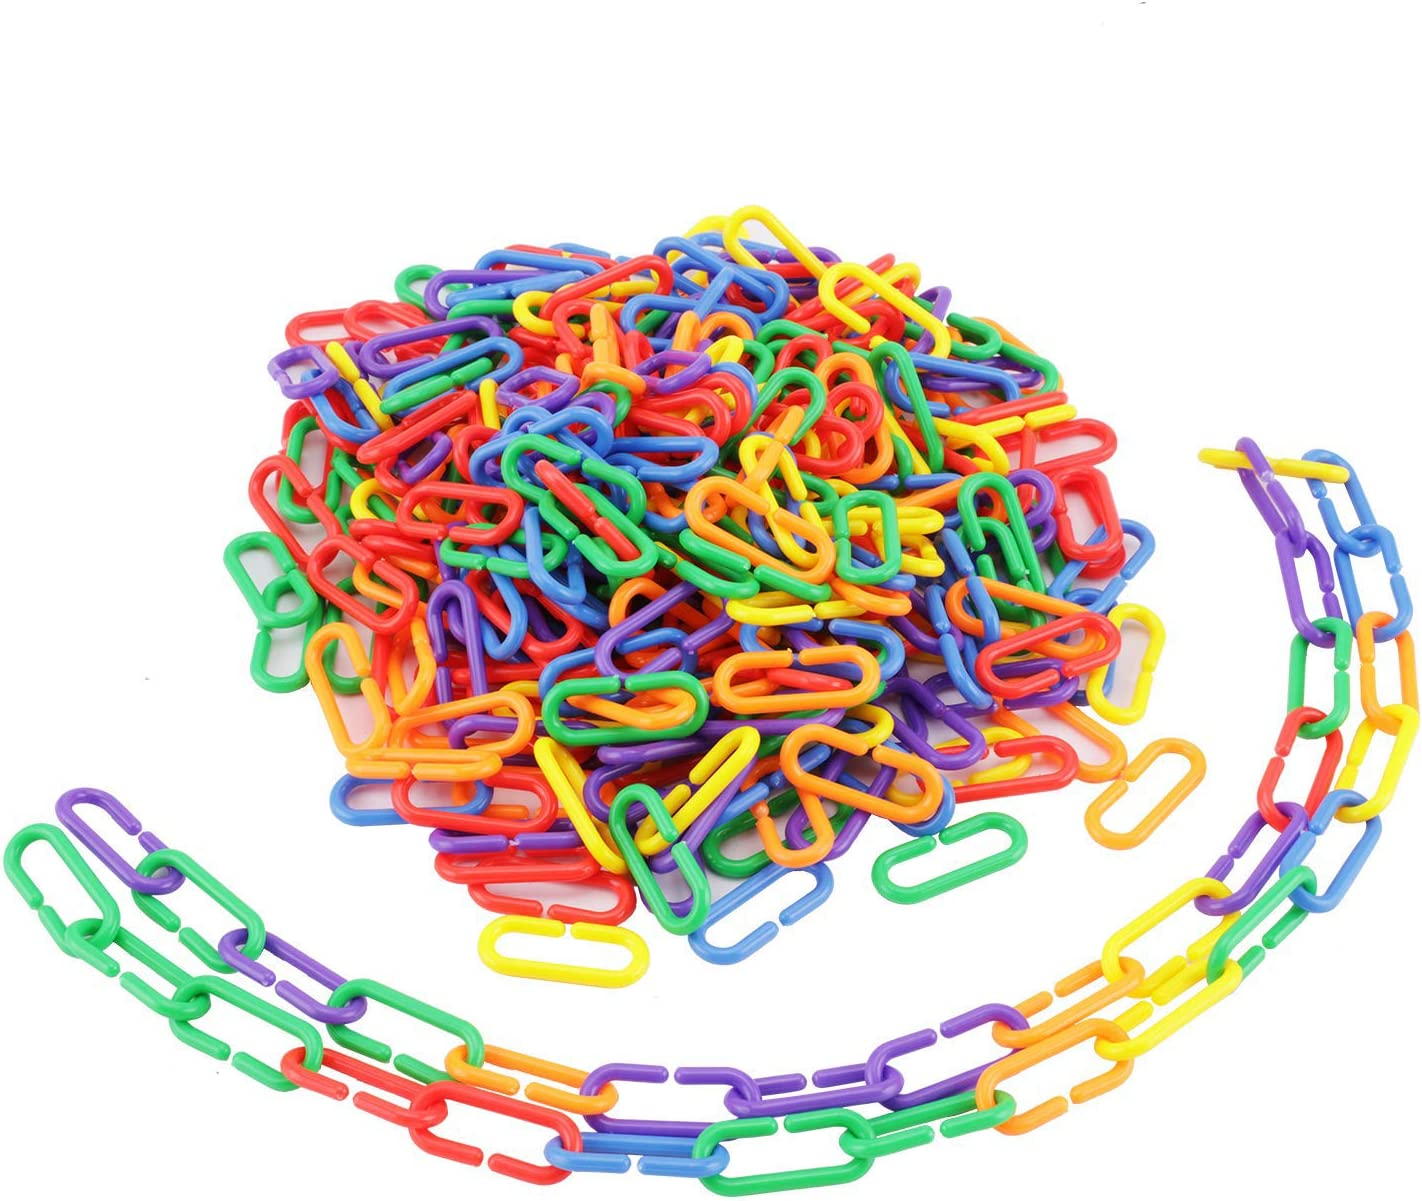 Fashionclubs Plastic C-Clips Hooks Chain Links C-Links Sugar Glider Small Rat Parrot Cage Toys, Children's Learning Toys 400 Assorted Color Links